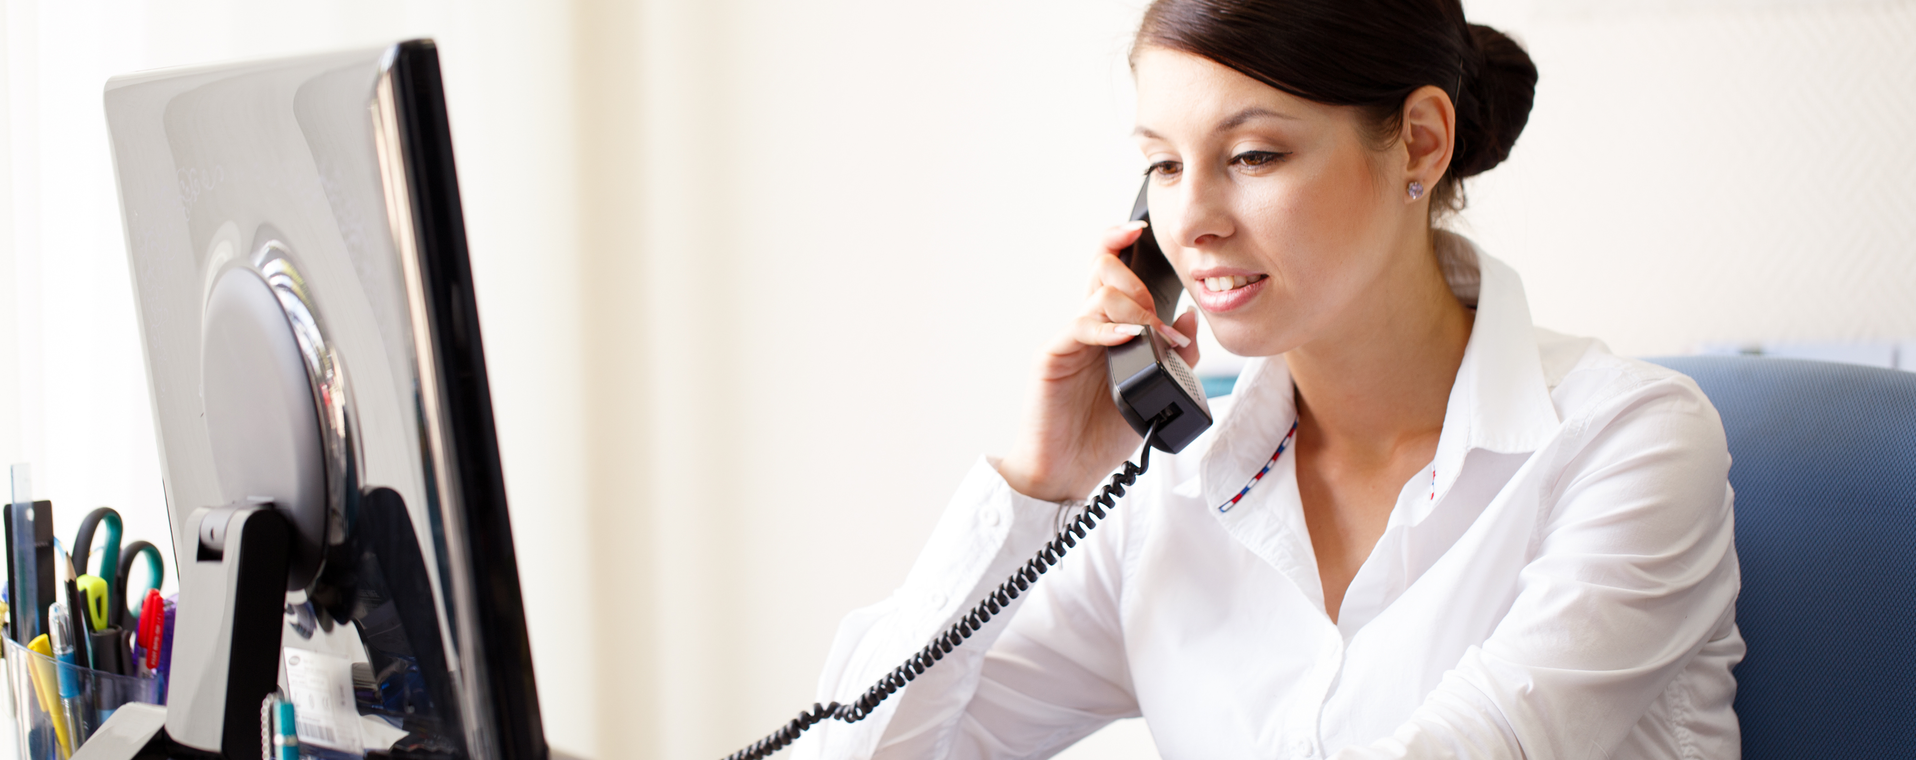 Running Your Business with a Single Office Phone Number Is Possible. Here's How.